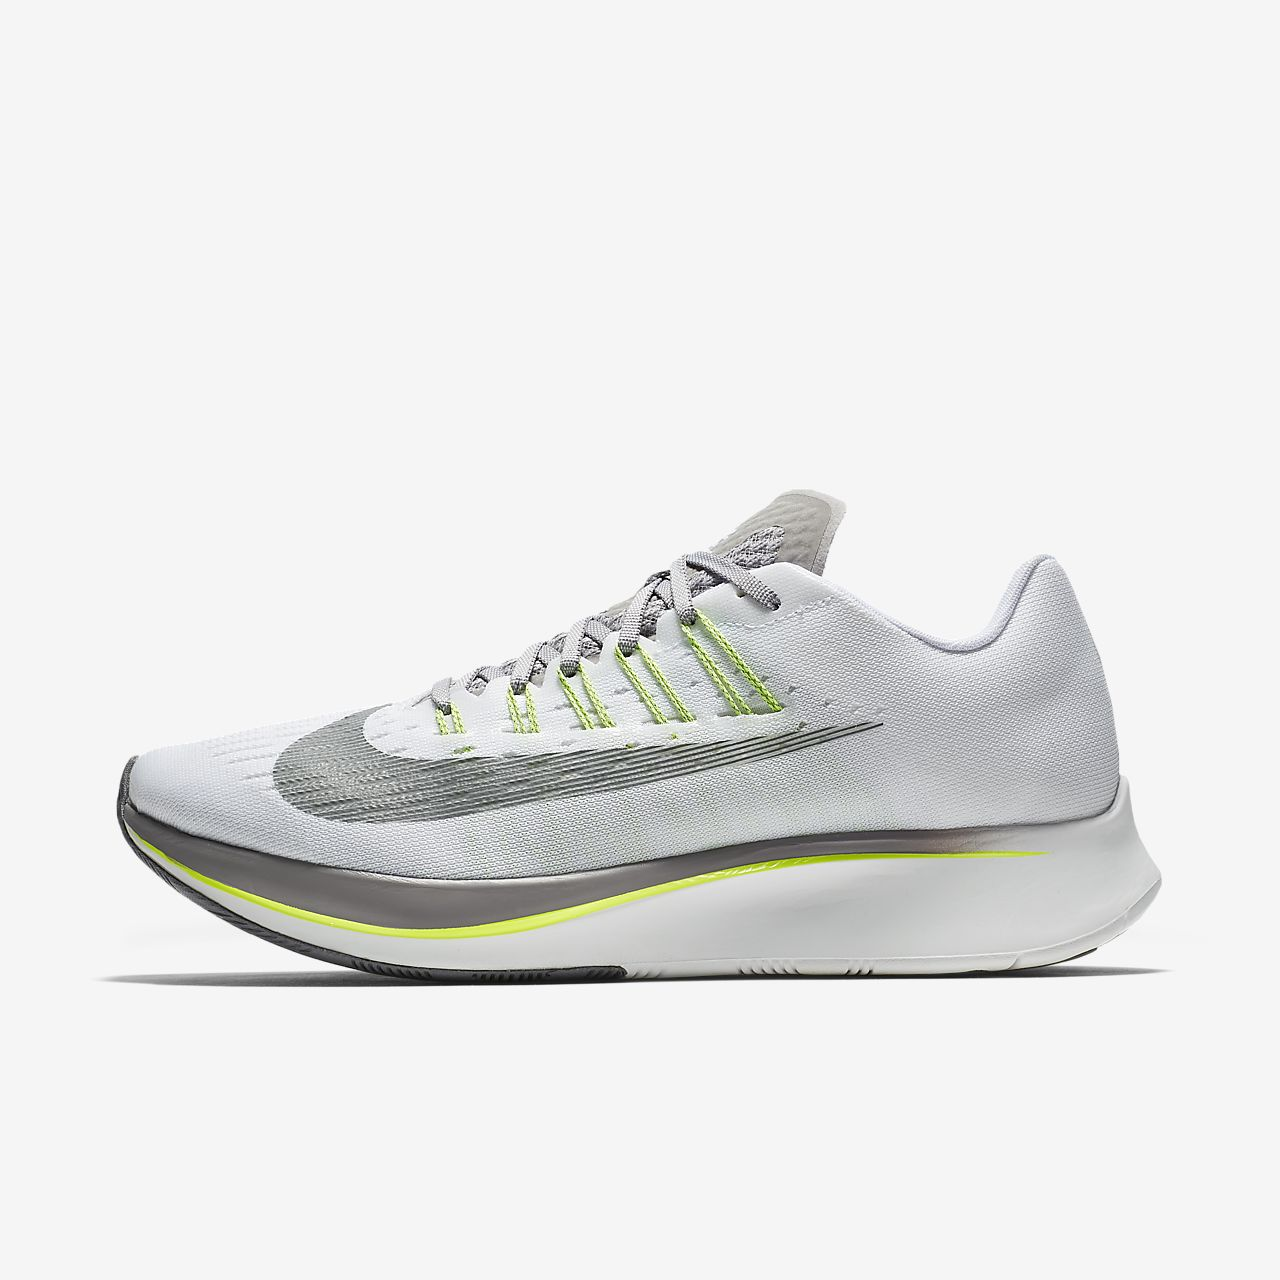 sports shoes 9b363 efa9d ... Nike Zoom Fly Men s Running Shoe